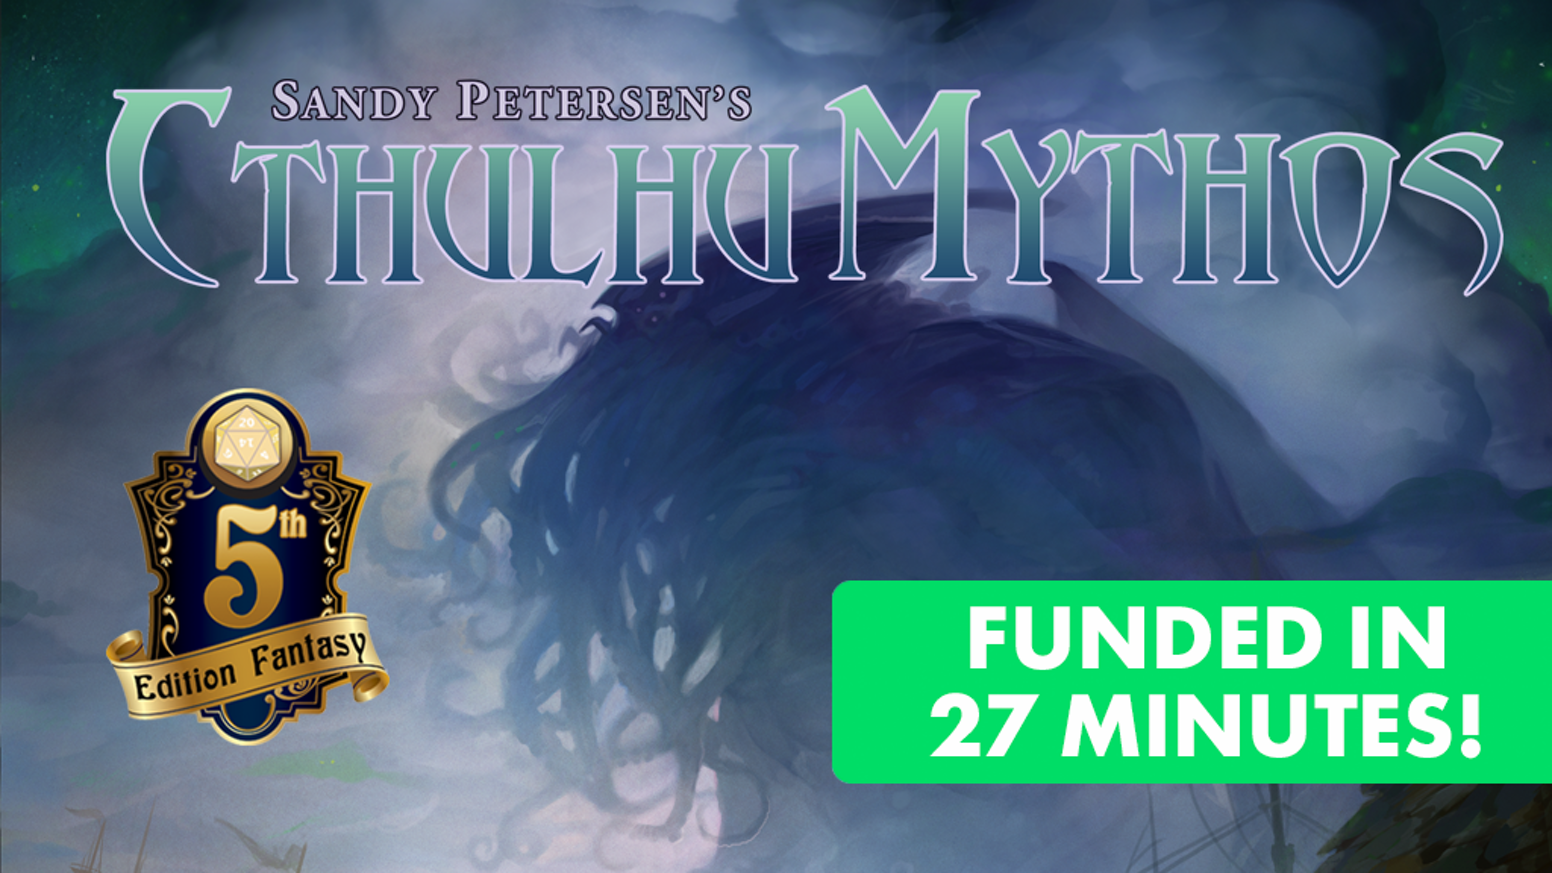 The definitive guide by Sandy Petersen. New rules, monsters, classes, spells, etc. for the Cthulhu Mythos.